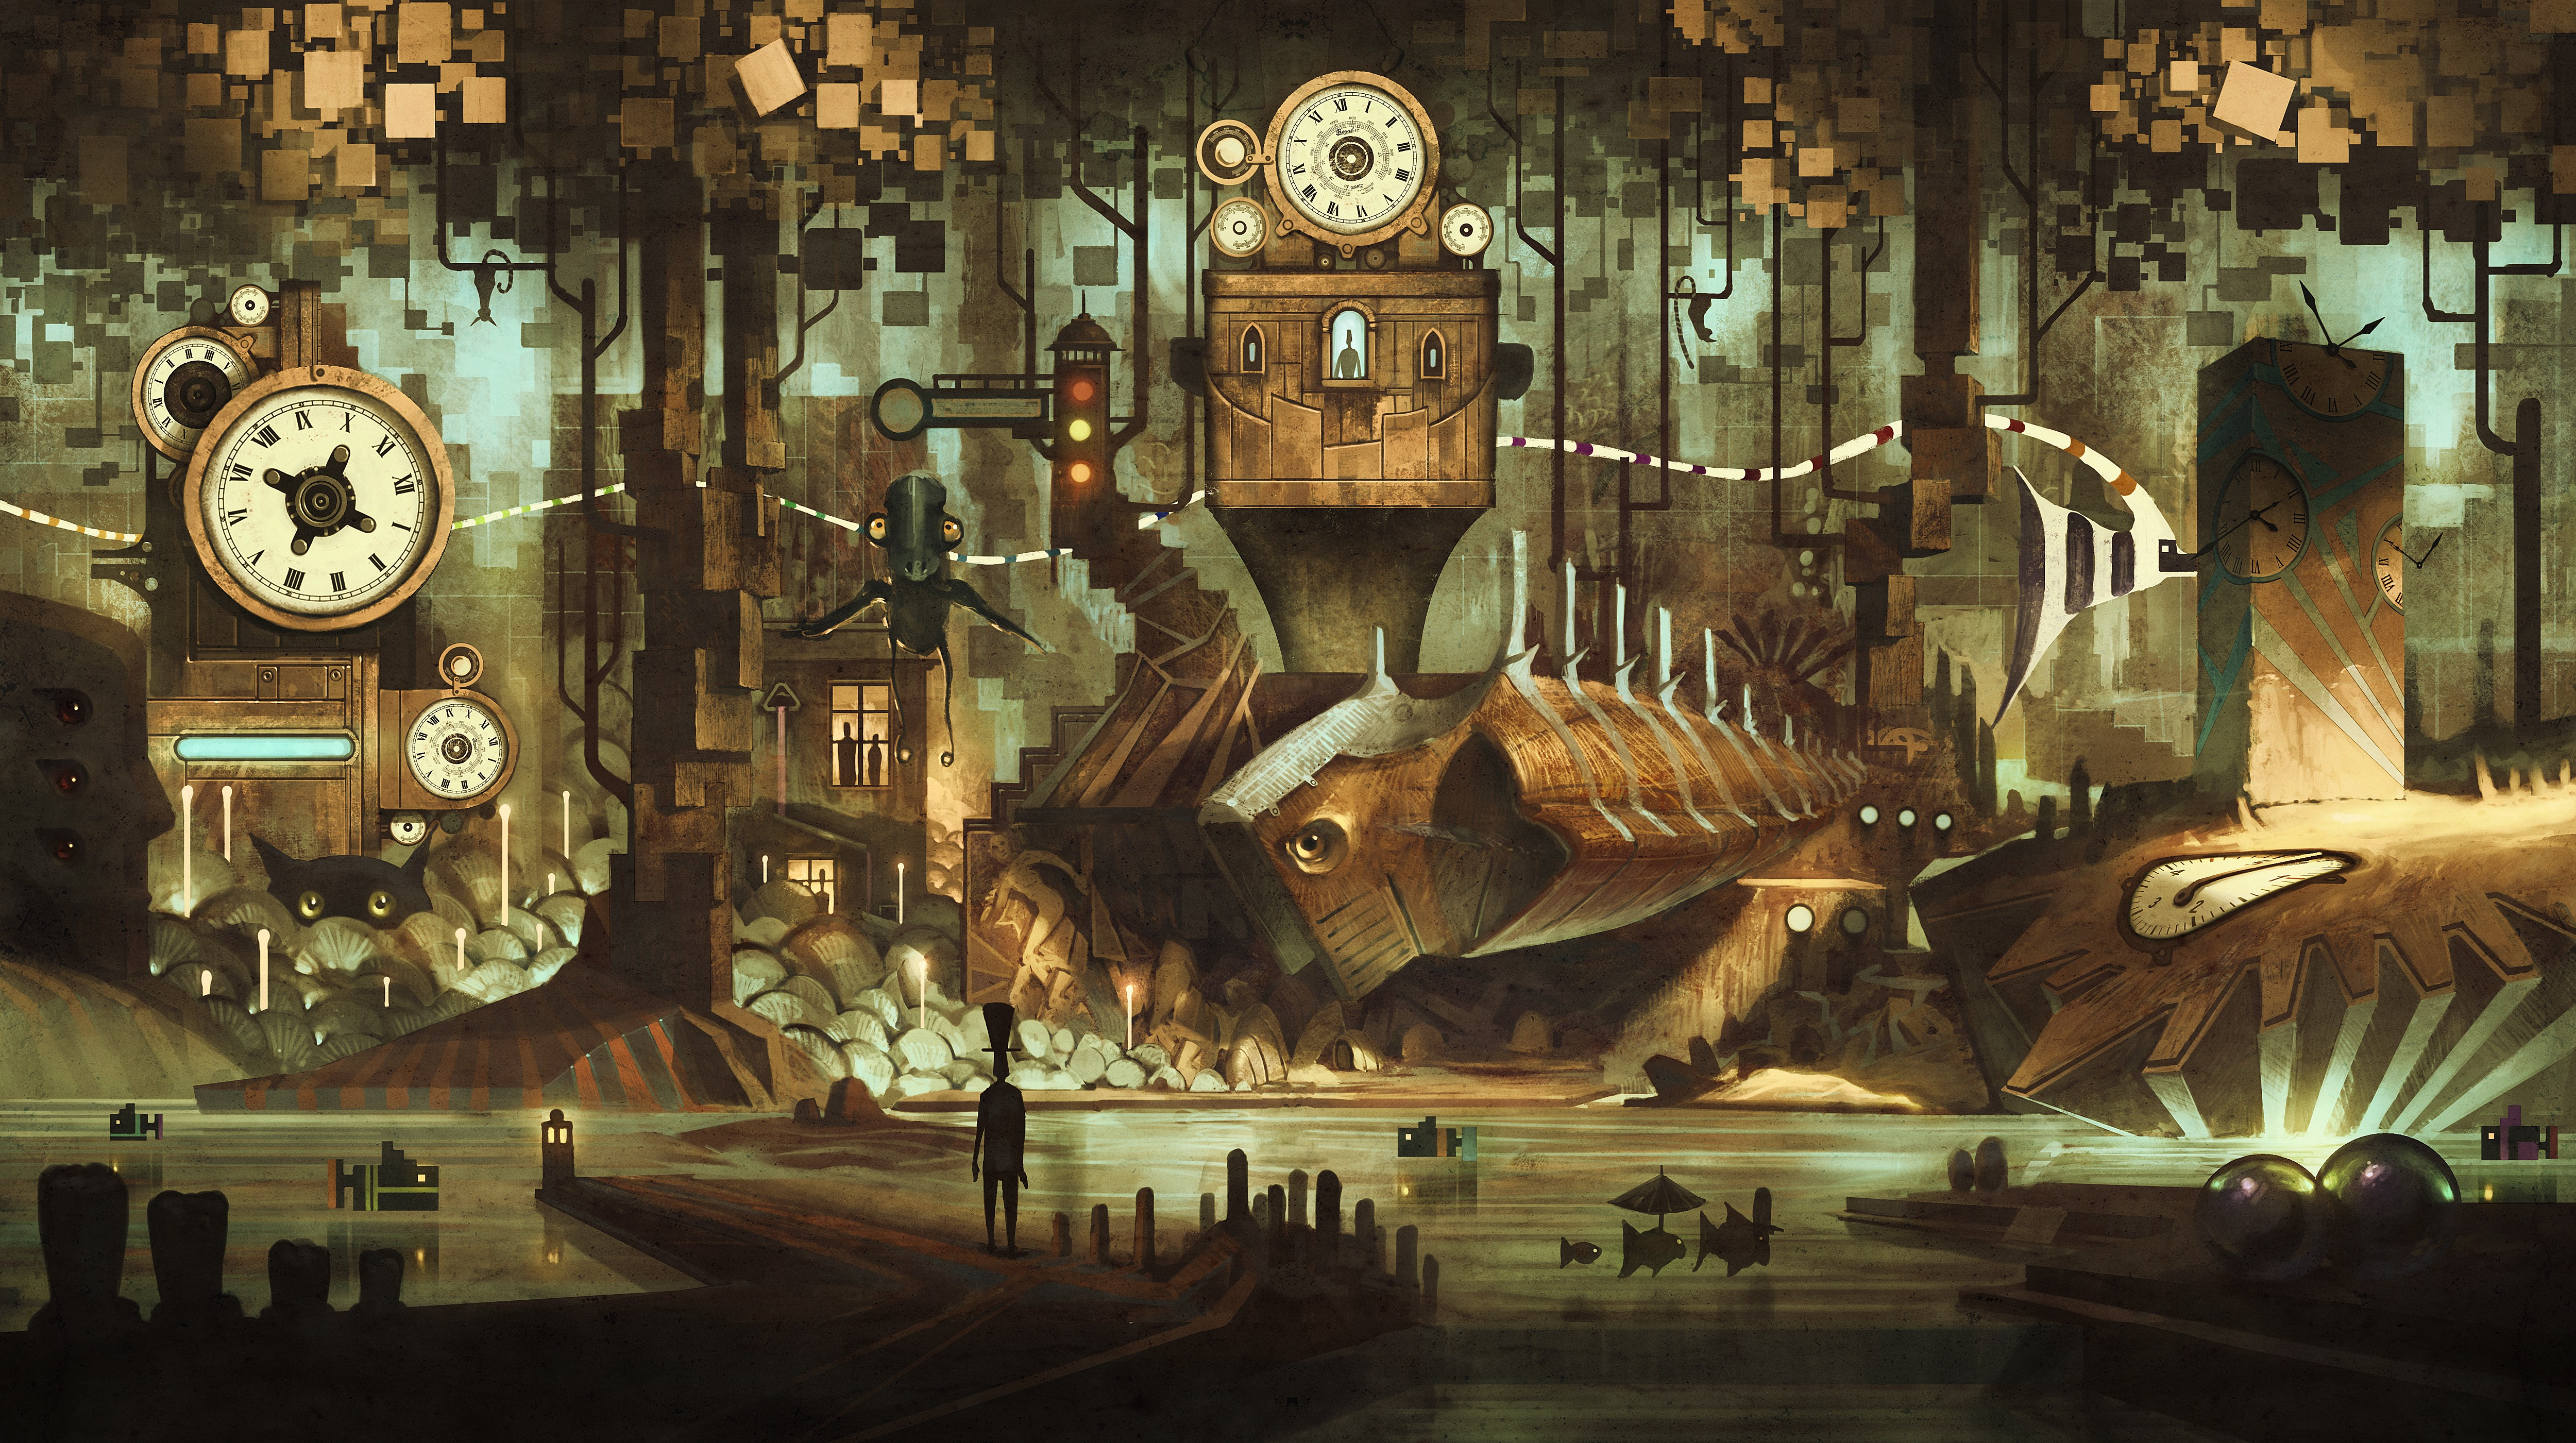 5000x2801 - Steampunk Wallpapers 13